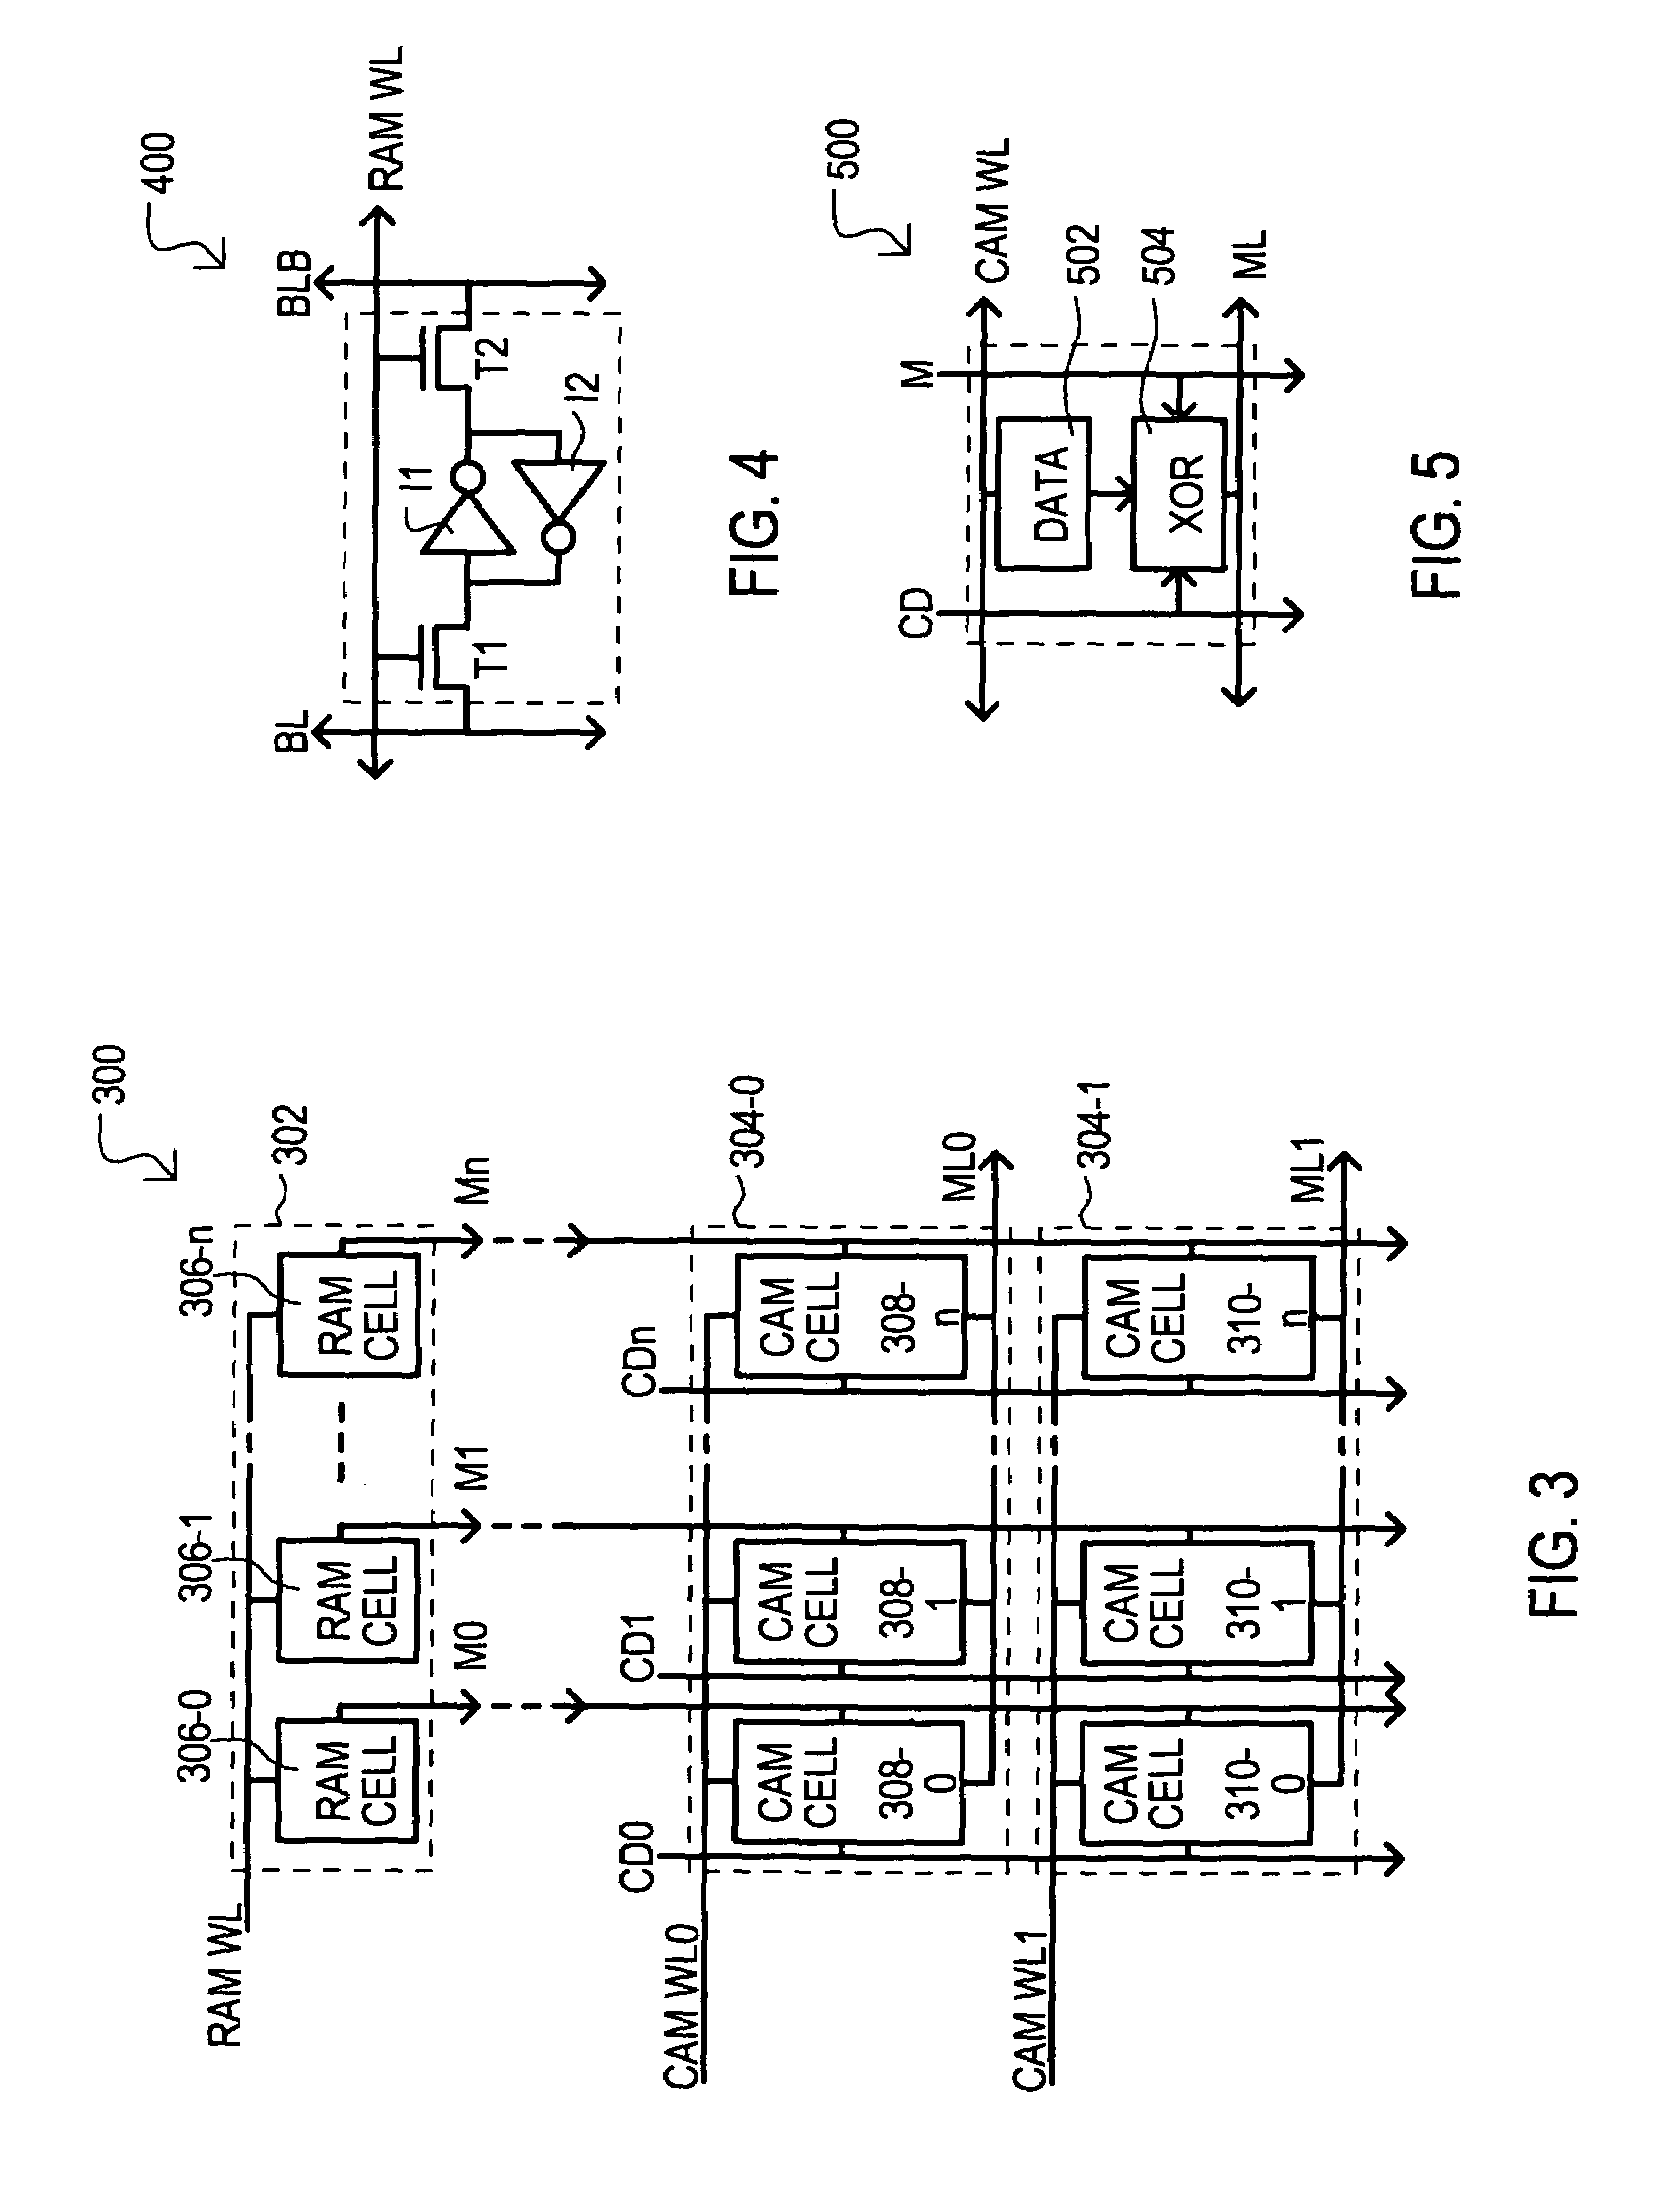 Patent Us7221575 Pseudo Ternary Content Addressable Memory Device Mlo Wiring Diagram Drawing